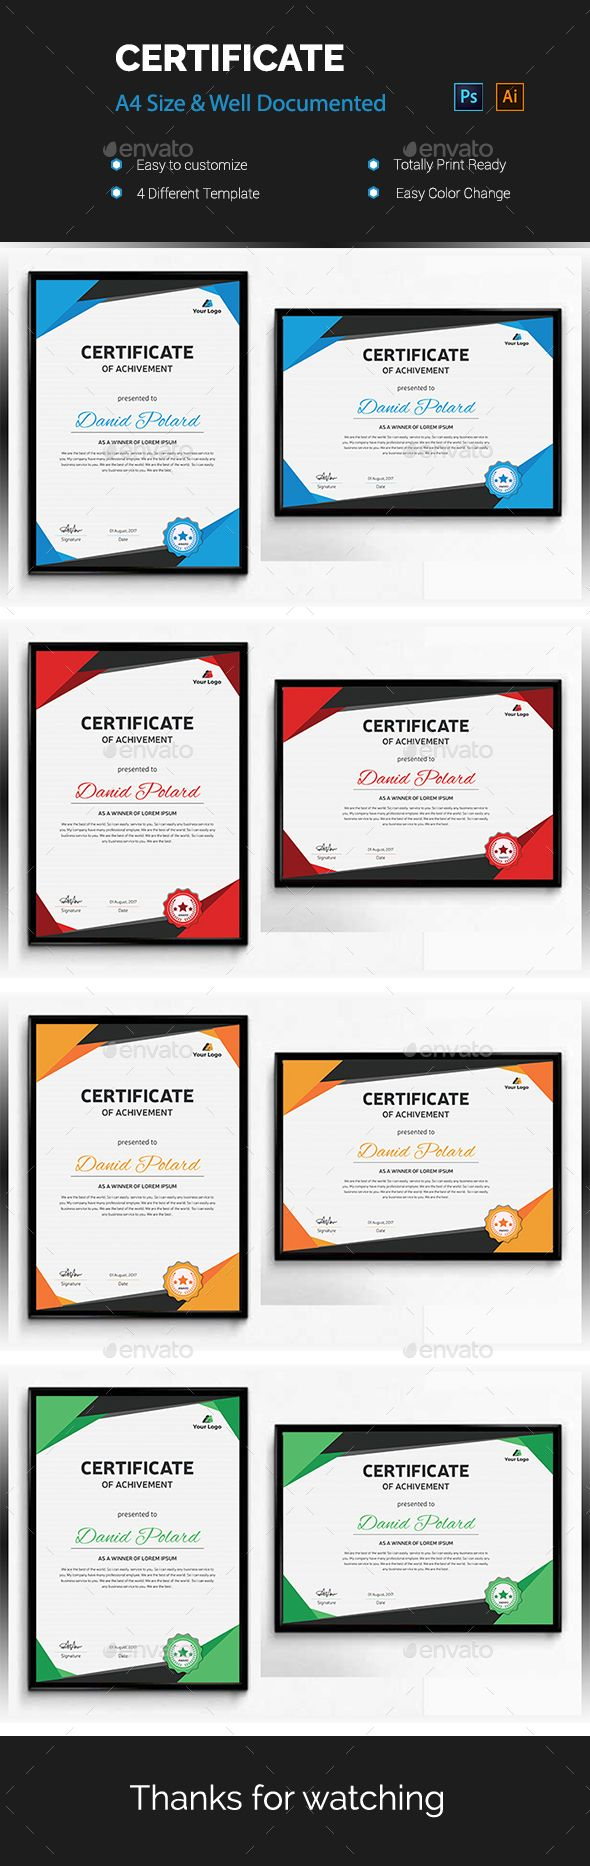 #Certificate - Certificates #Stationery Download here: https://graphicriver.net/item/certificate/20299983?ref=alena994